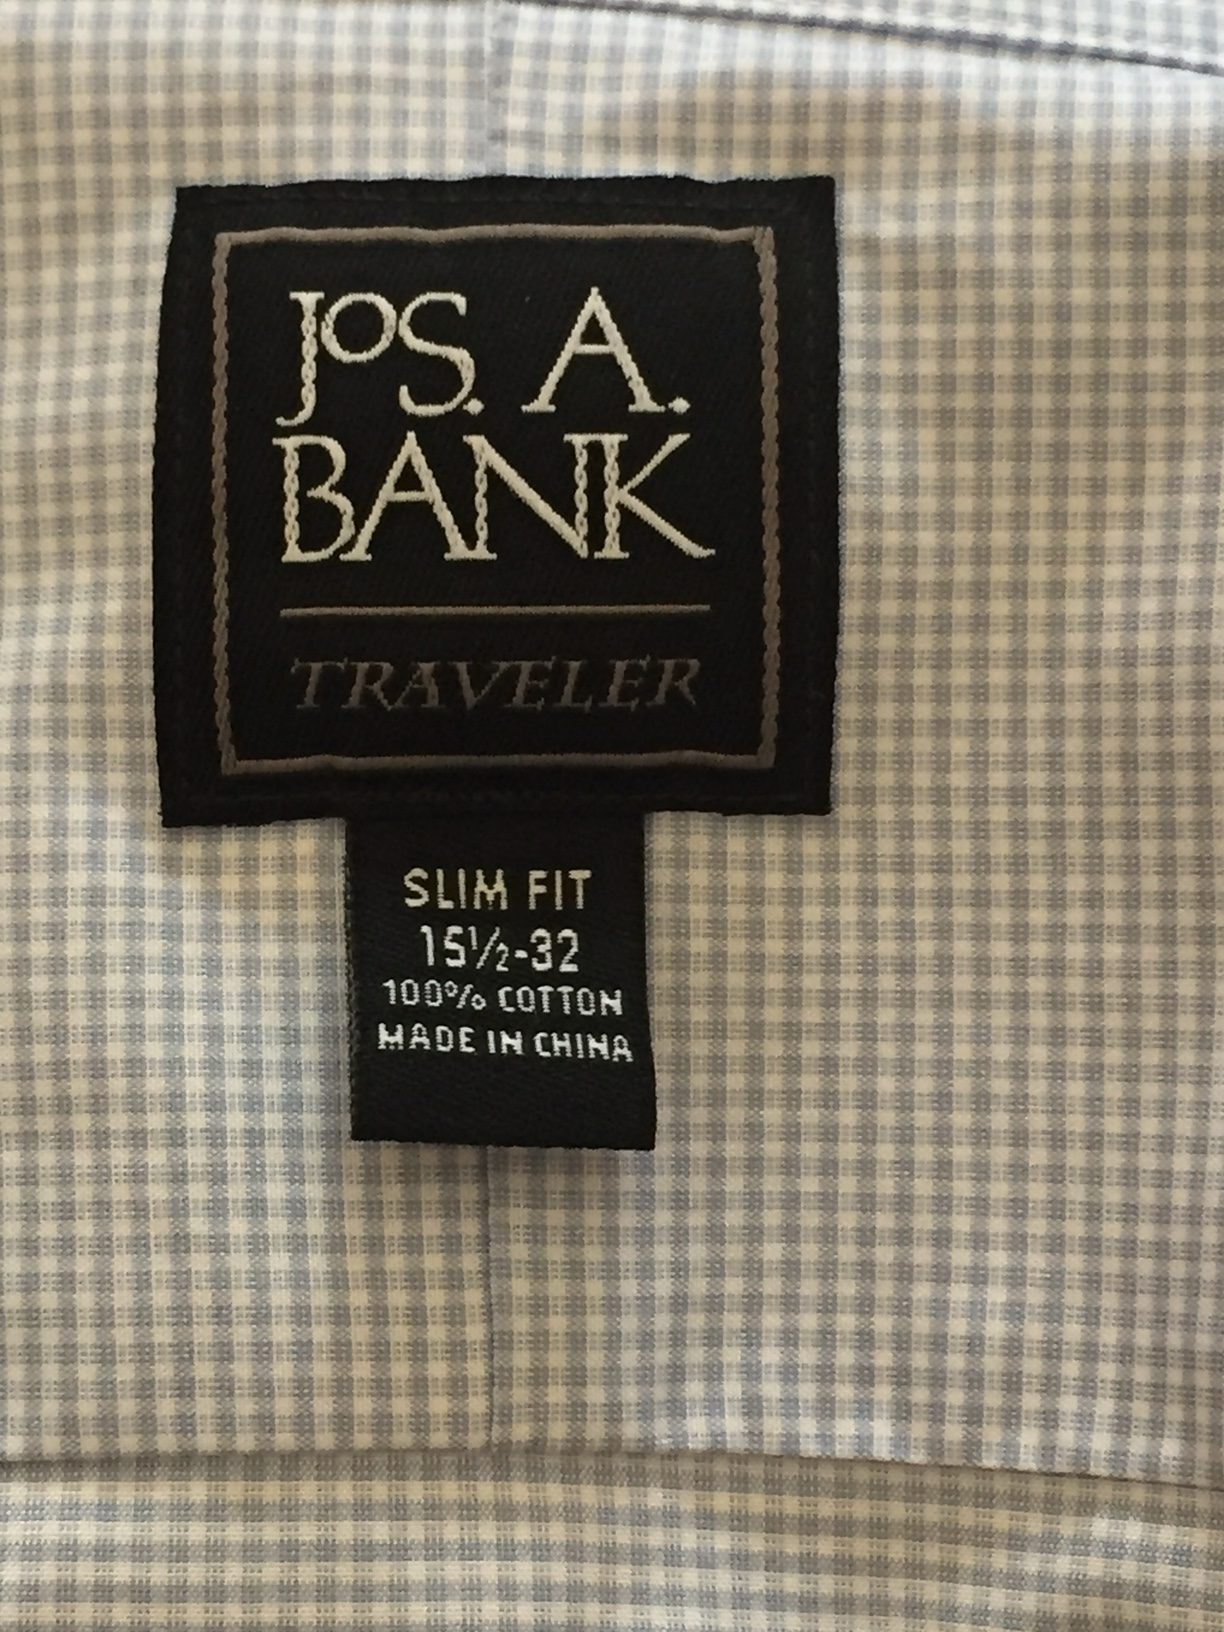 Jos A Bank shirts sizing - where are Jos A Bank shirts made